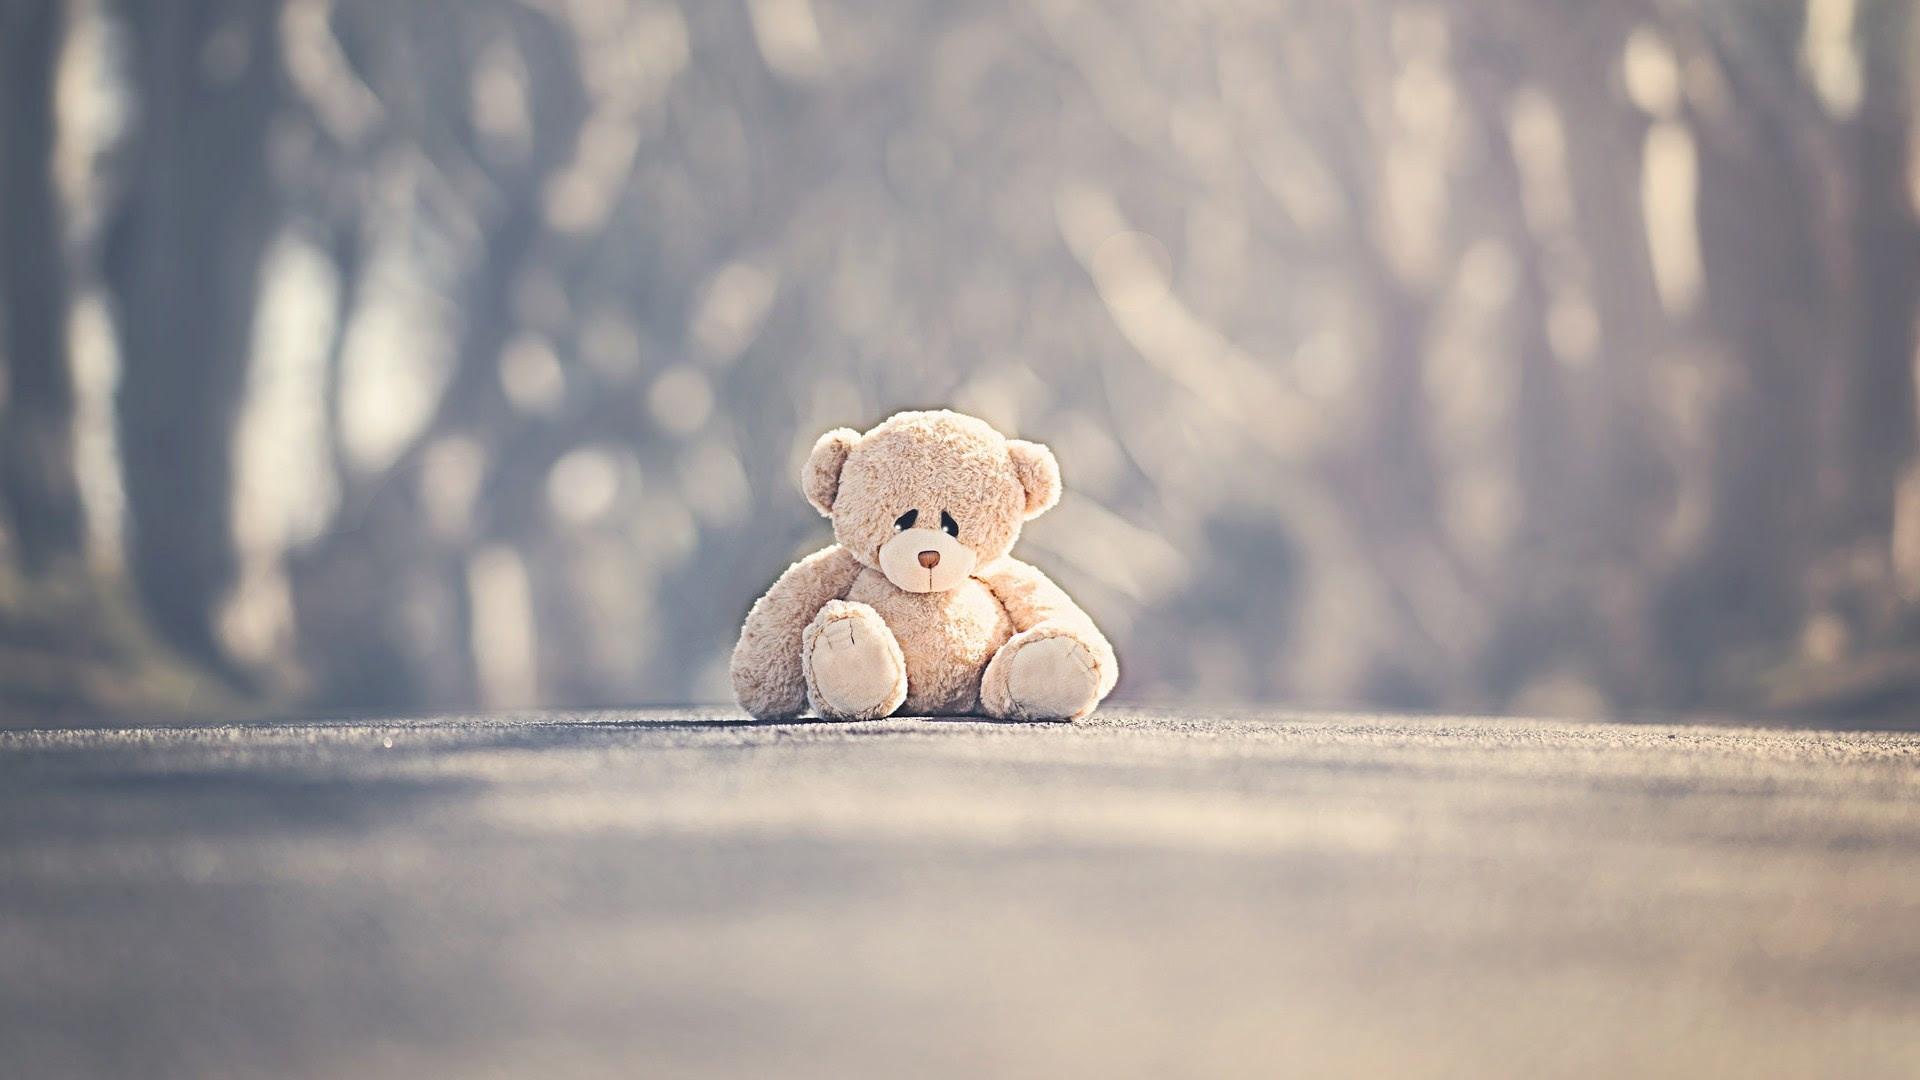 Sad Alone Teddy Bear On Road Wallpapers 1920x1080 260345